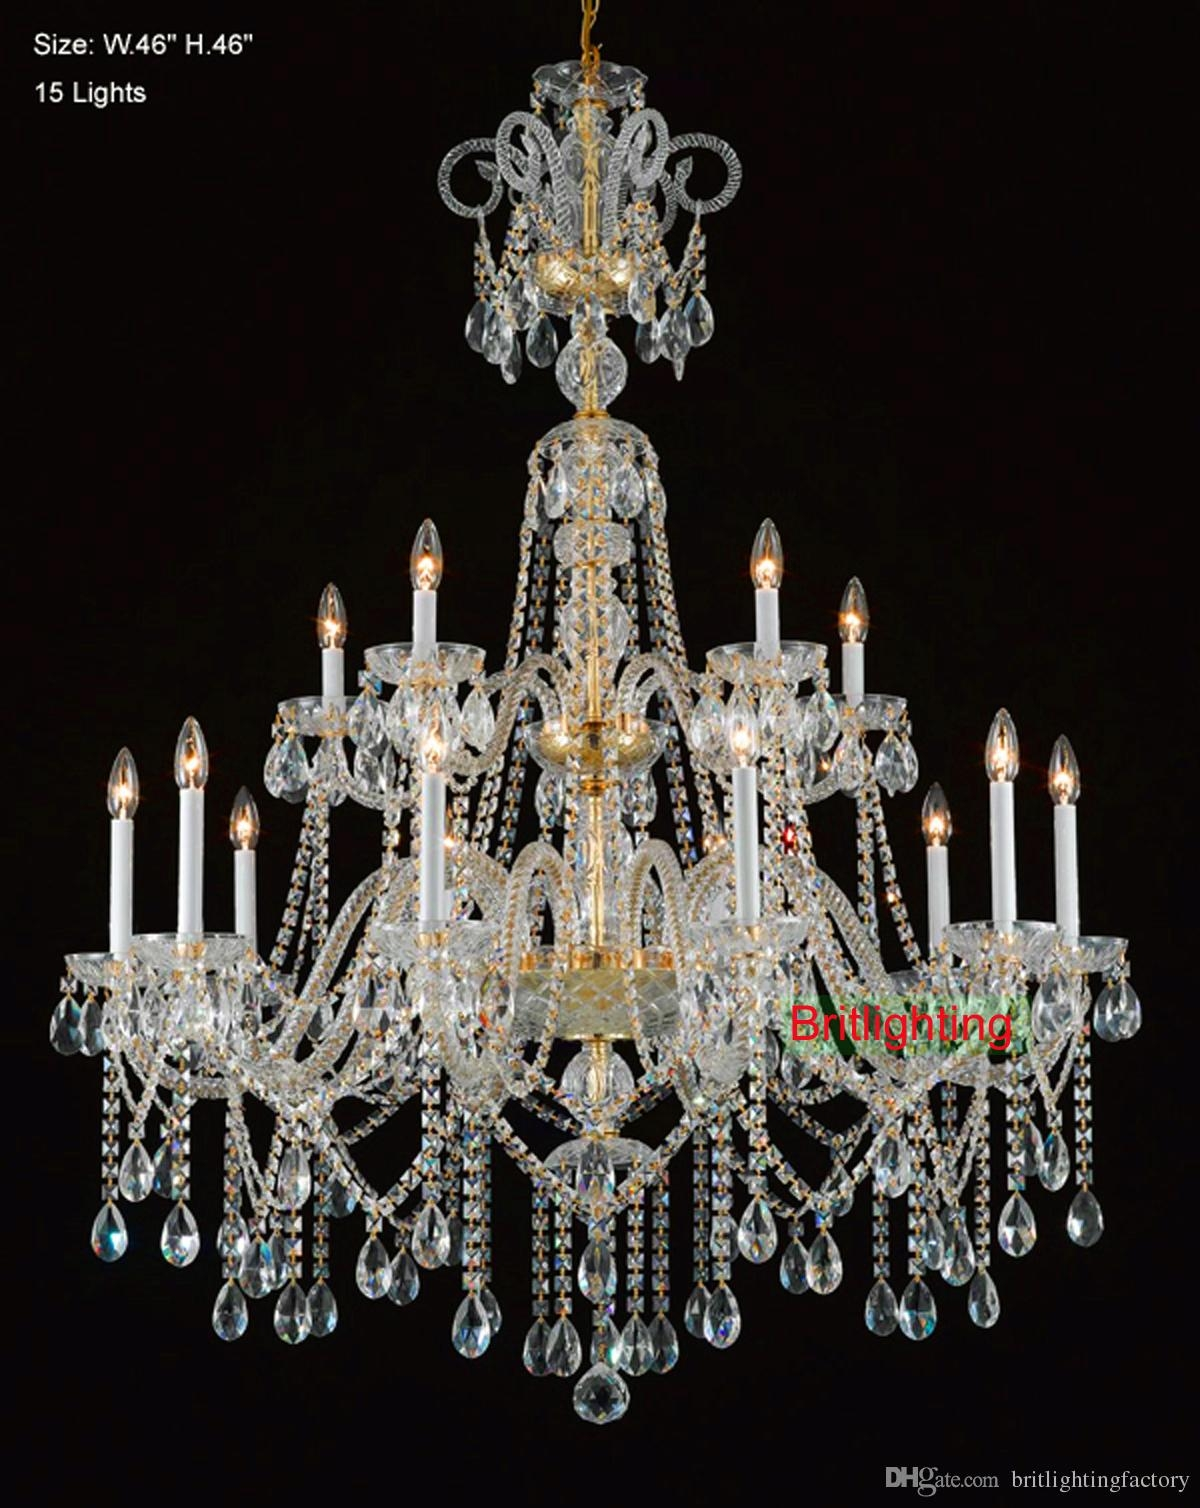 Wholesale Crystal Chandelier From China Flush Fitting Chandeliers With Flush Fitting Chandeliers (Image 15 of 15)